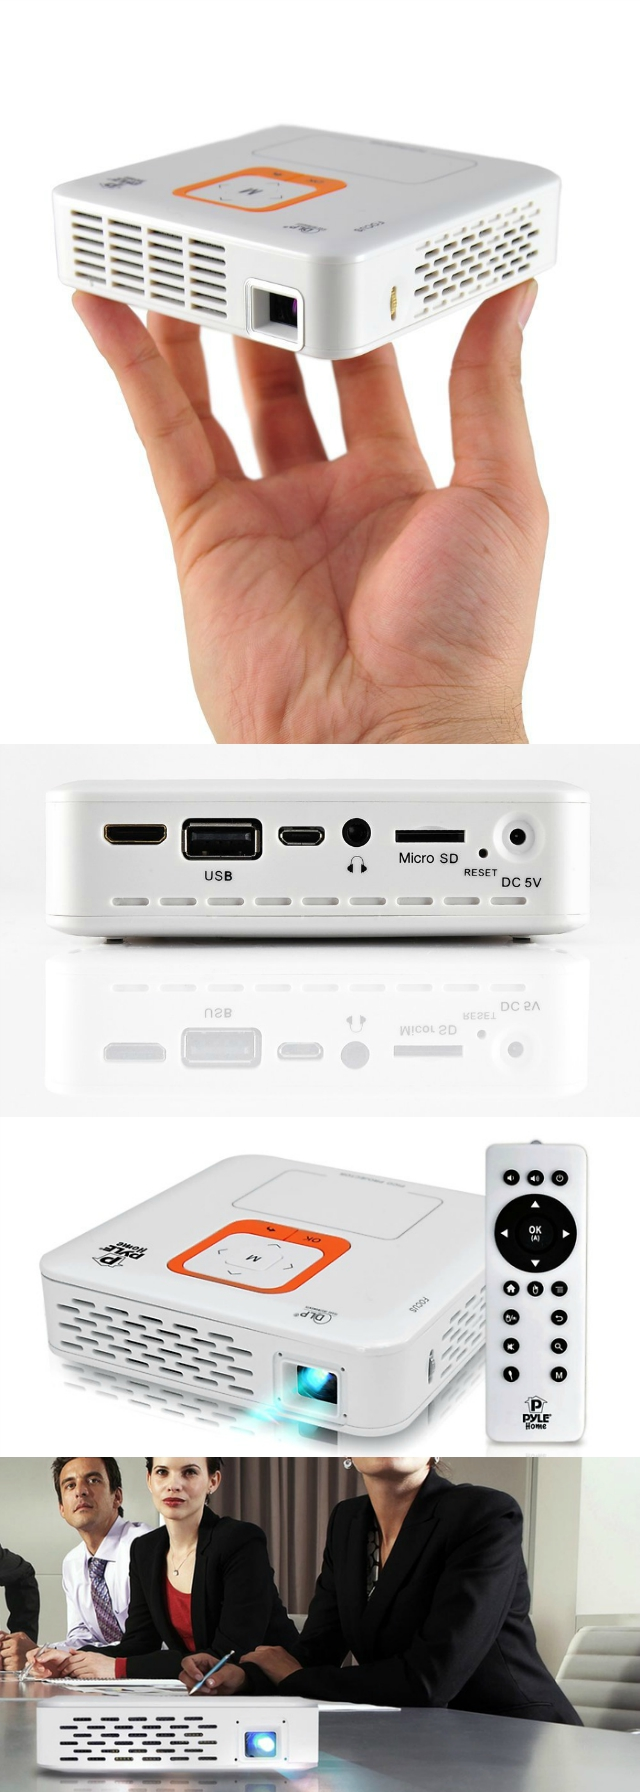 Pyle smart pocket projector presentations in your palm for Smart pocket projector